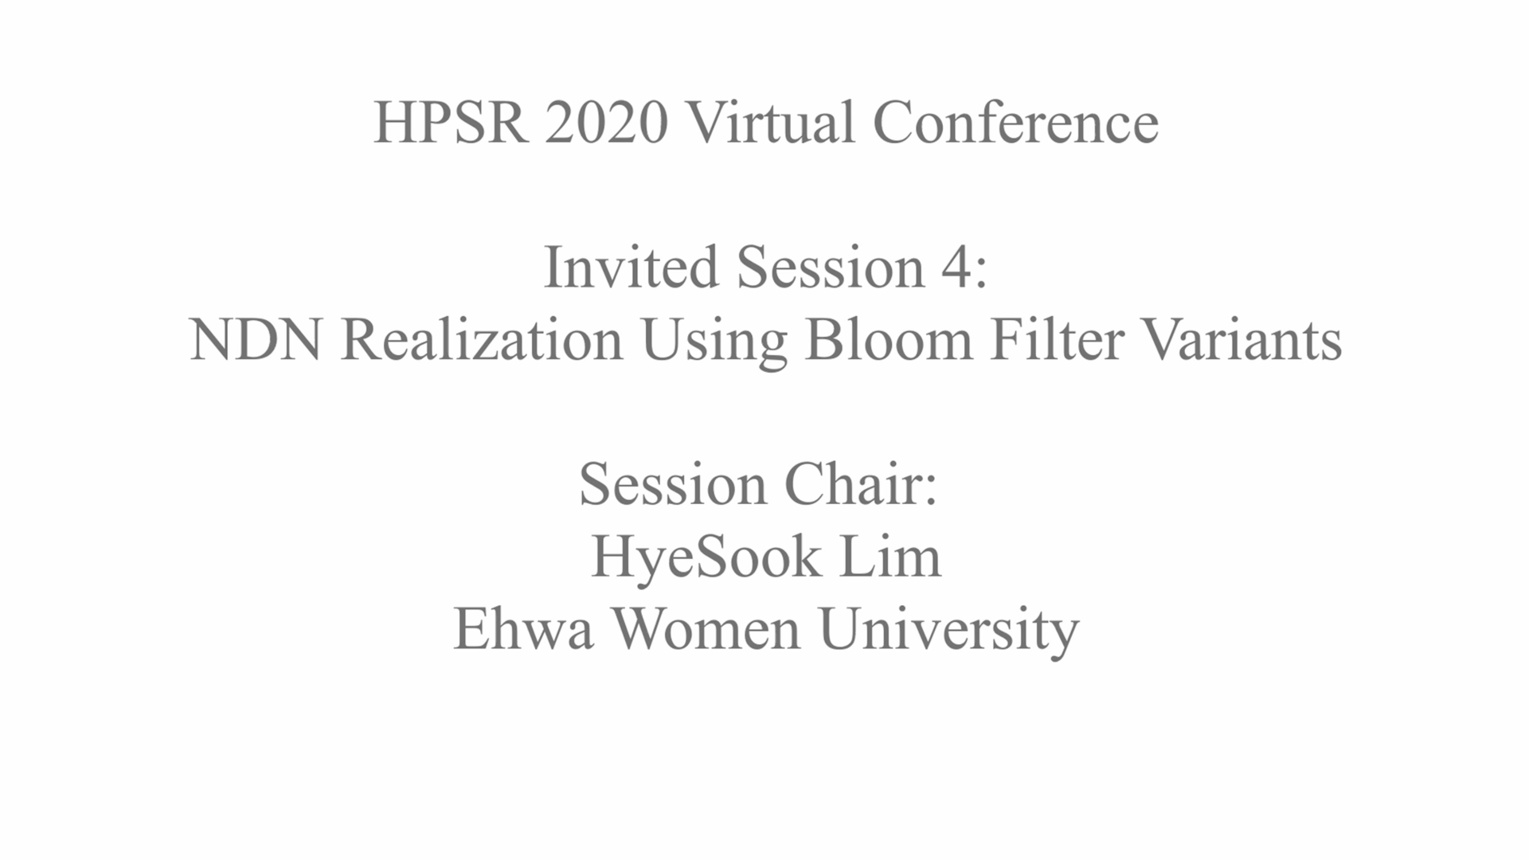 NDN Realization Using Bloom Filter Variants: Invited Speakers - HPSR 2020 Virtual Conference